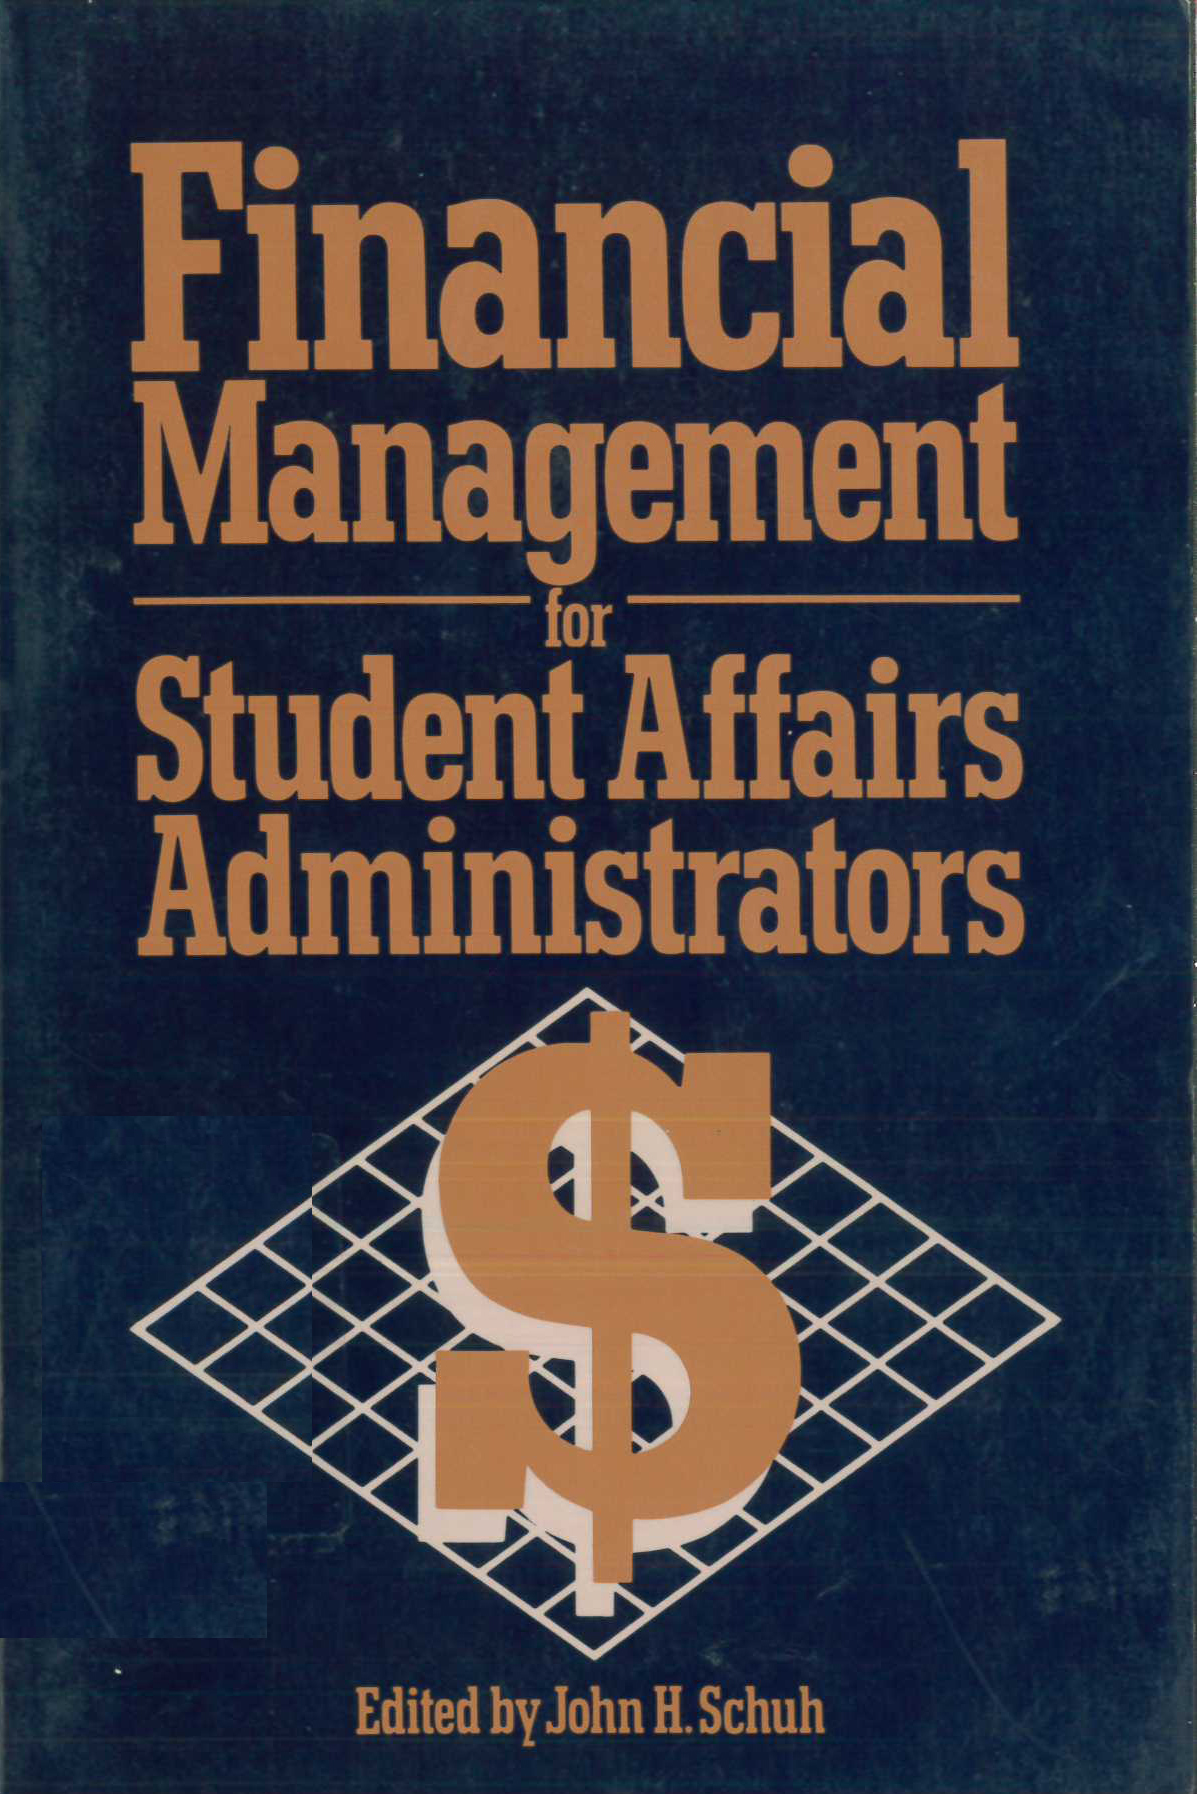 Financial Management for Student Affairs Administrators